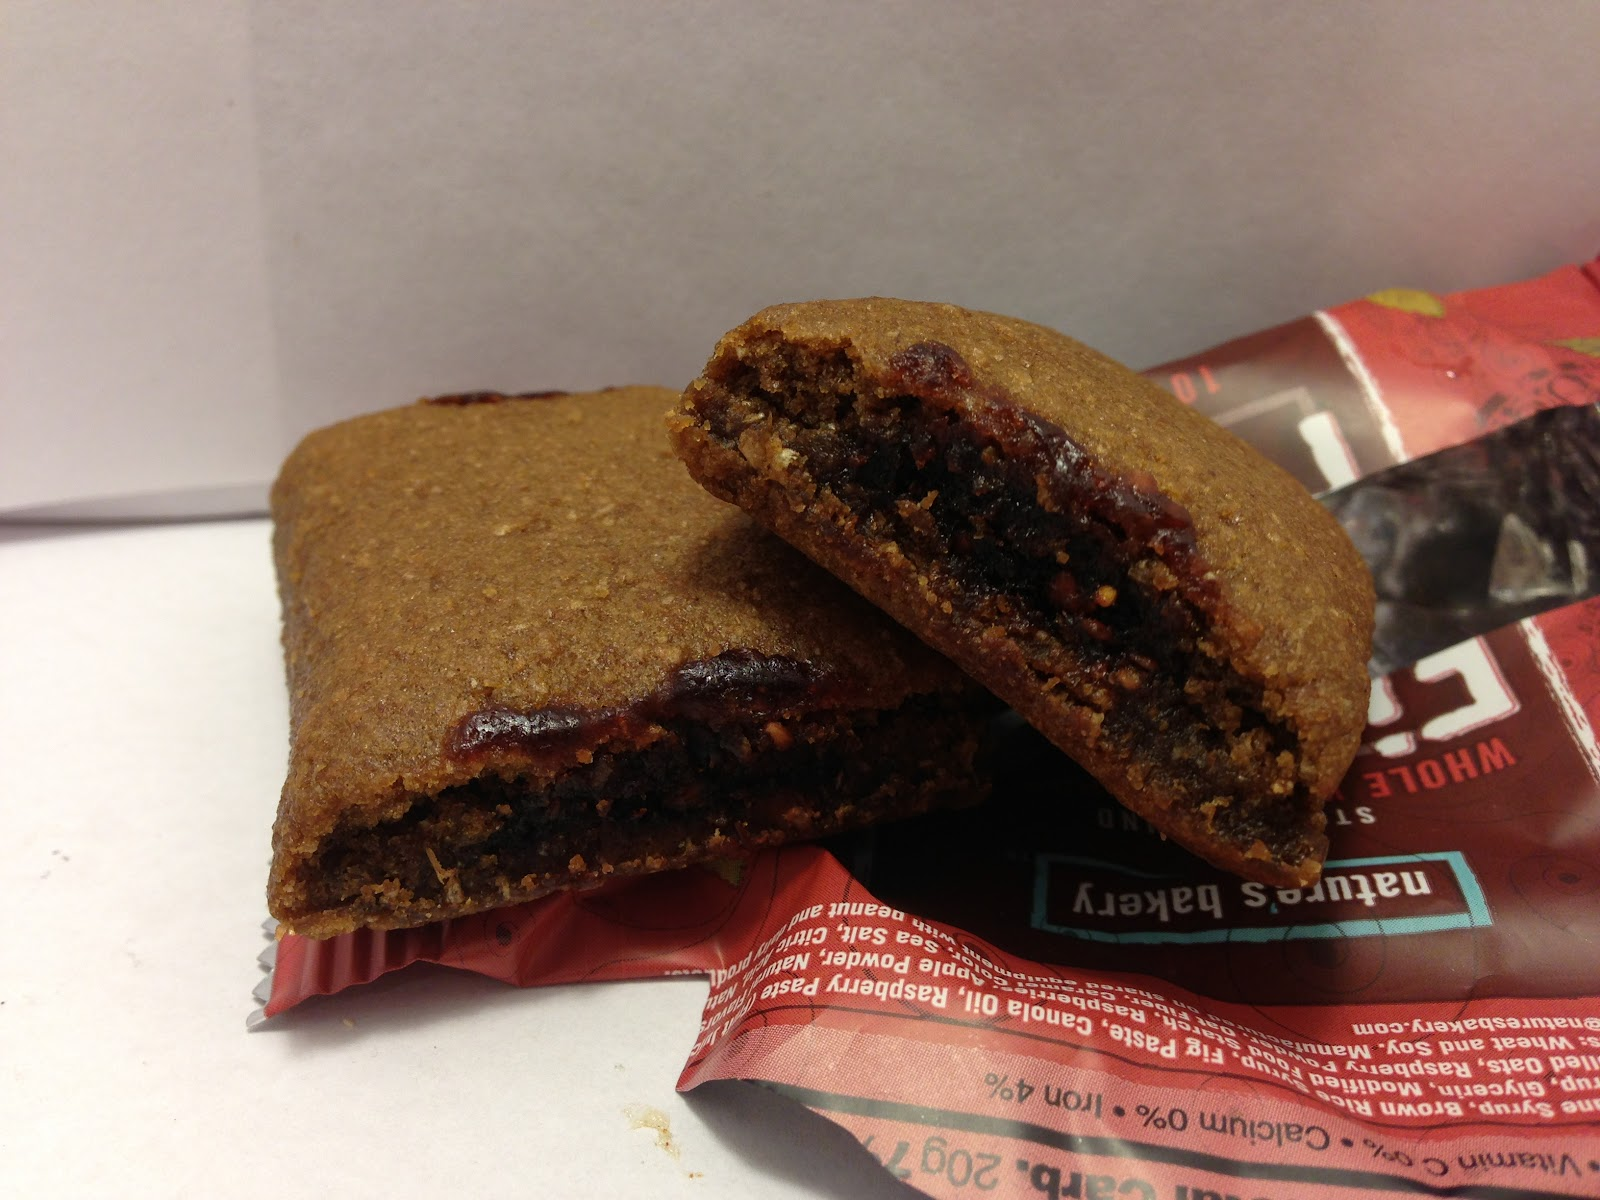 ... : Review: Nature's Bakery Stone Ground Whole Wheat Raspberry Fig Bar